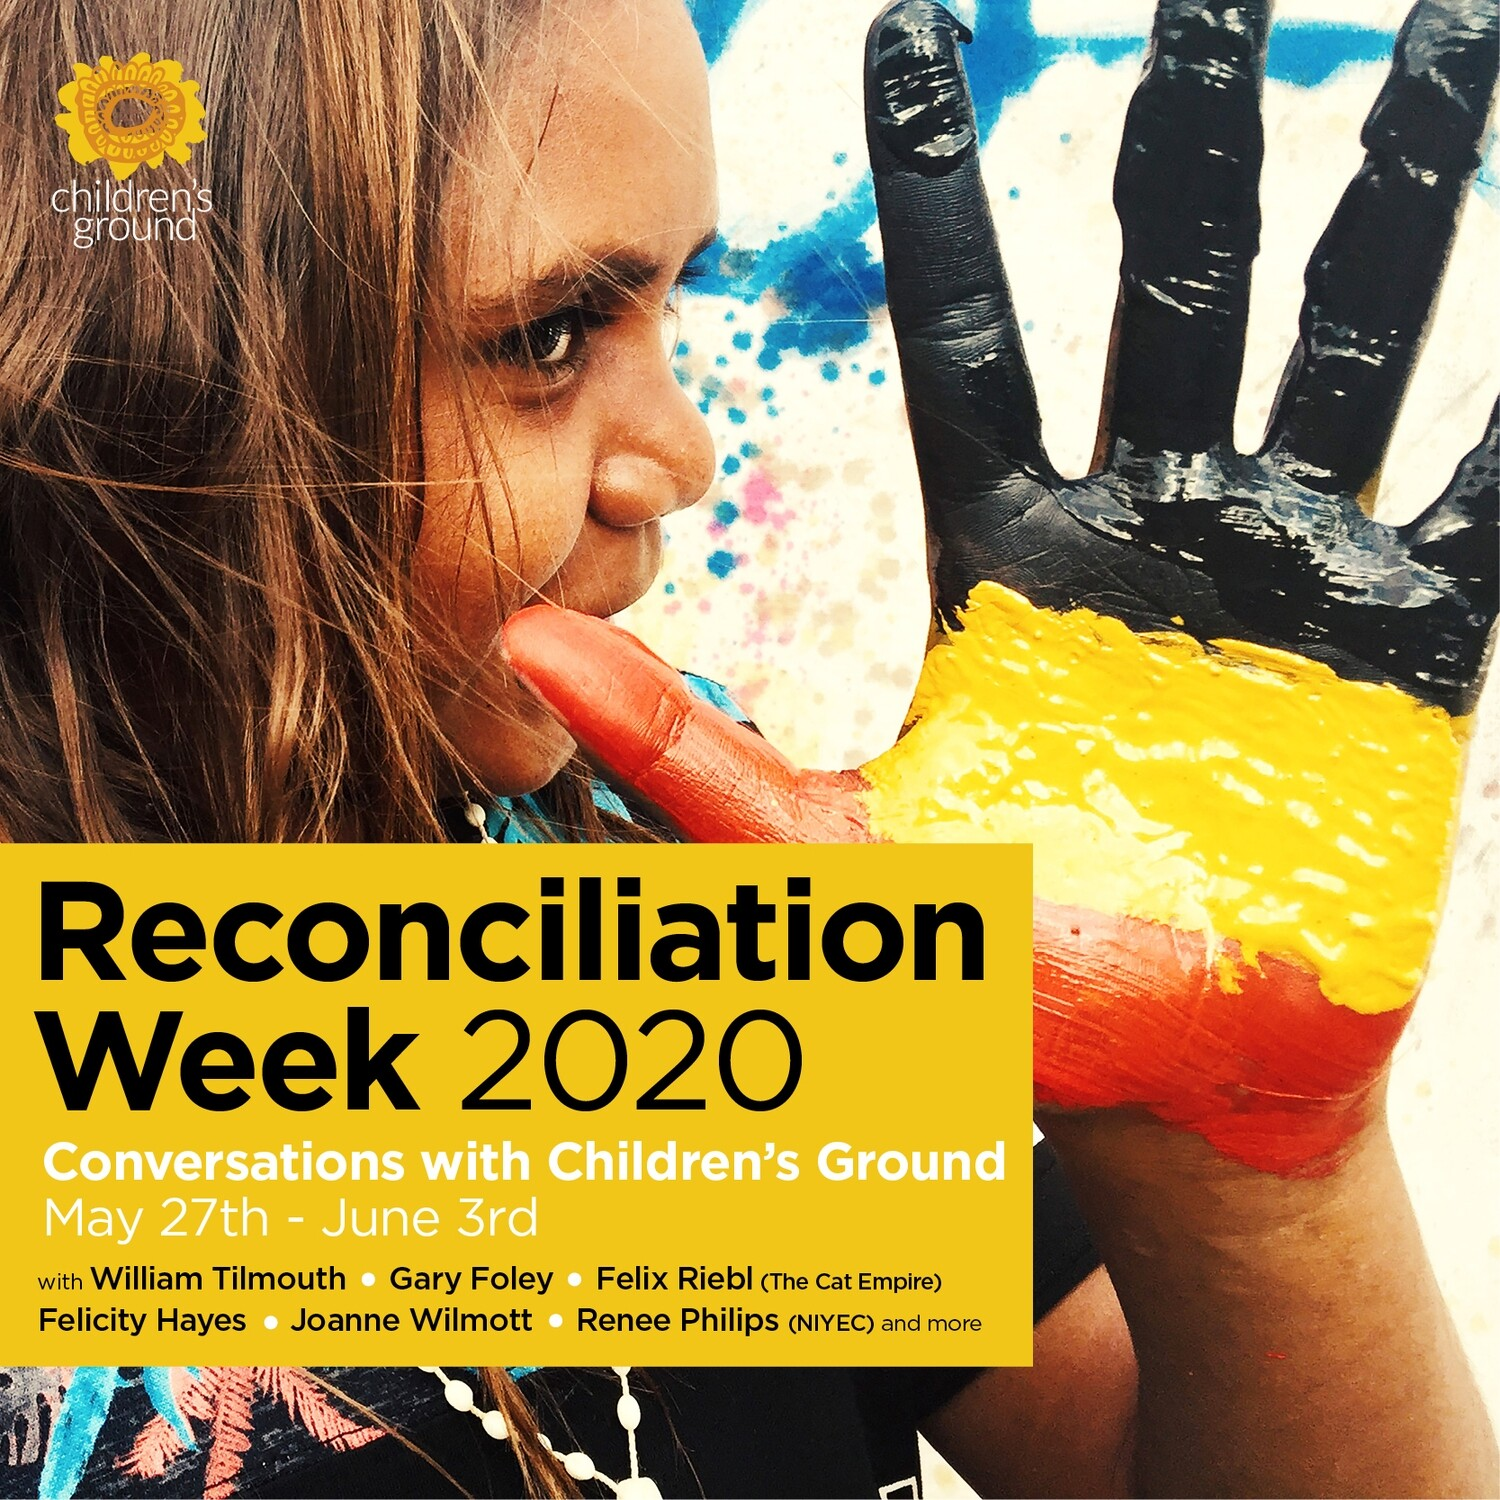 'When and how will we reconcile our history?'